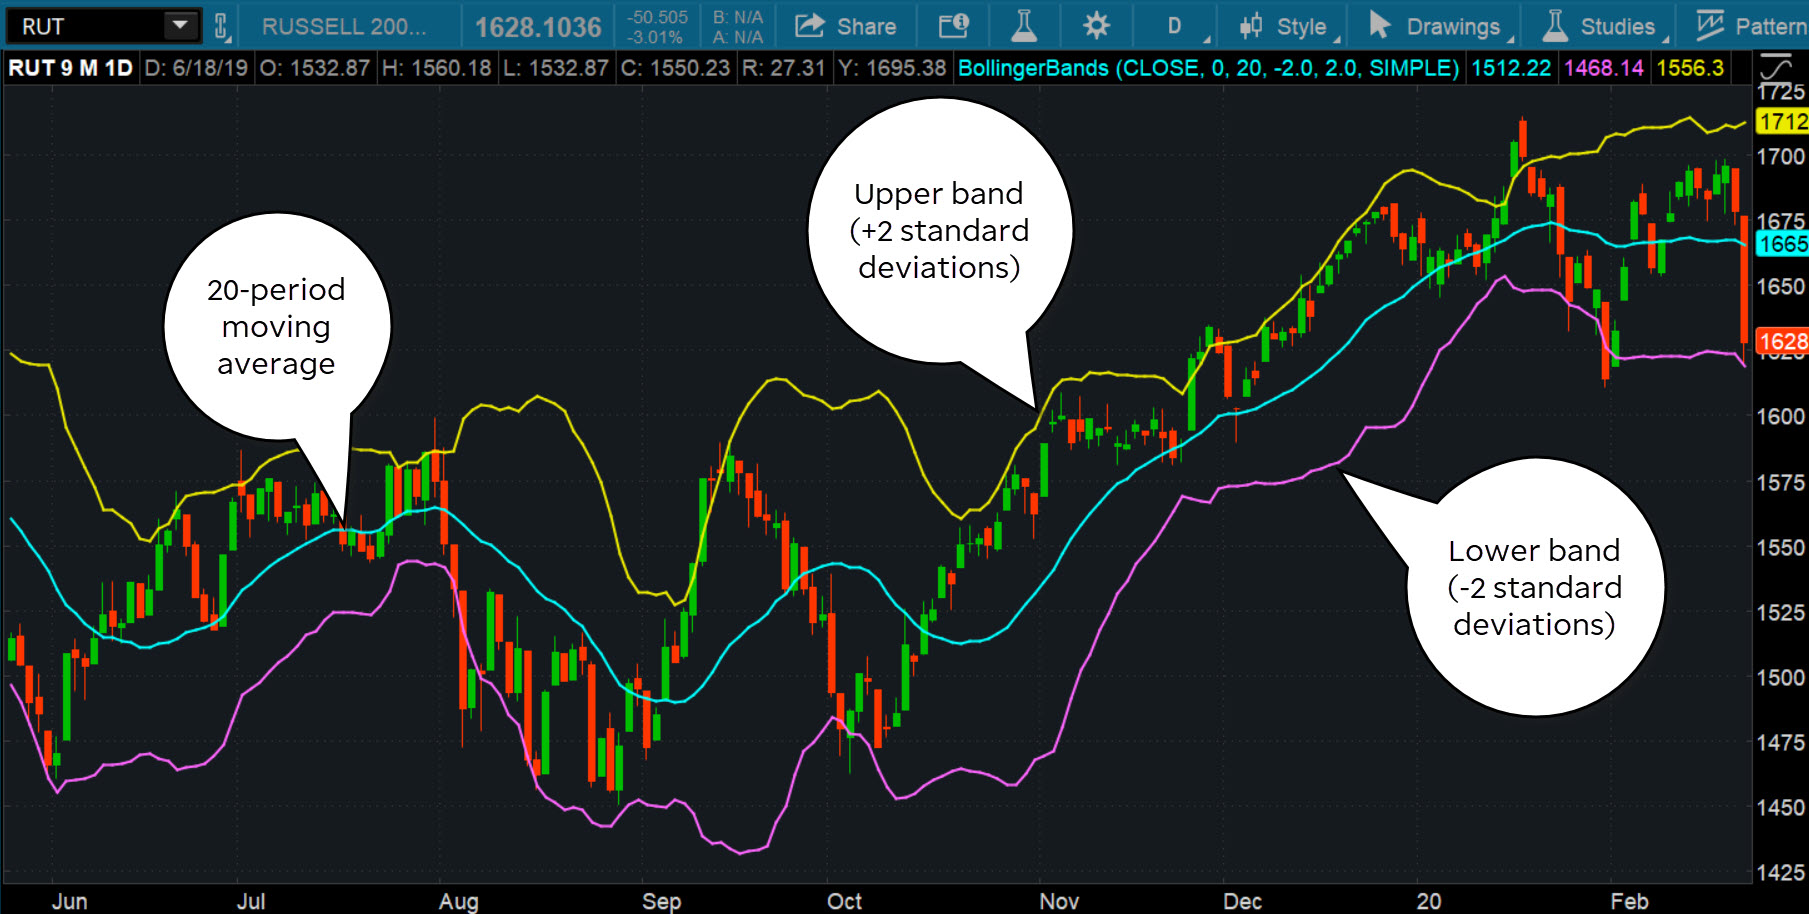 Price chart with Bollinger Bands and volatility